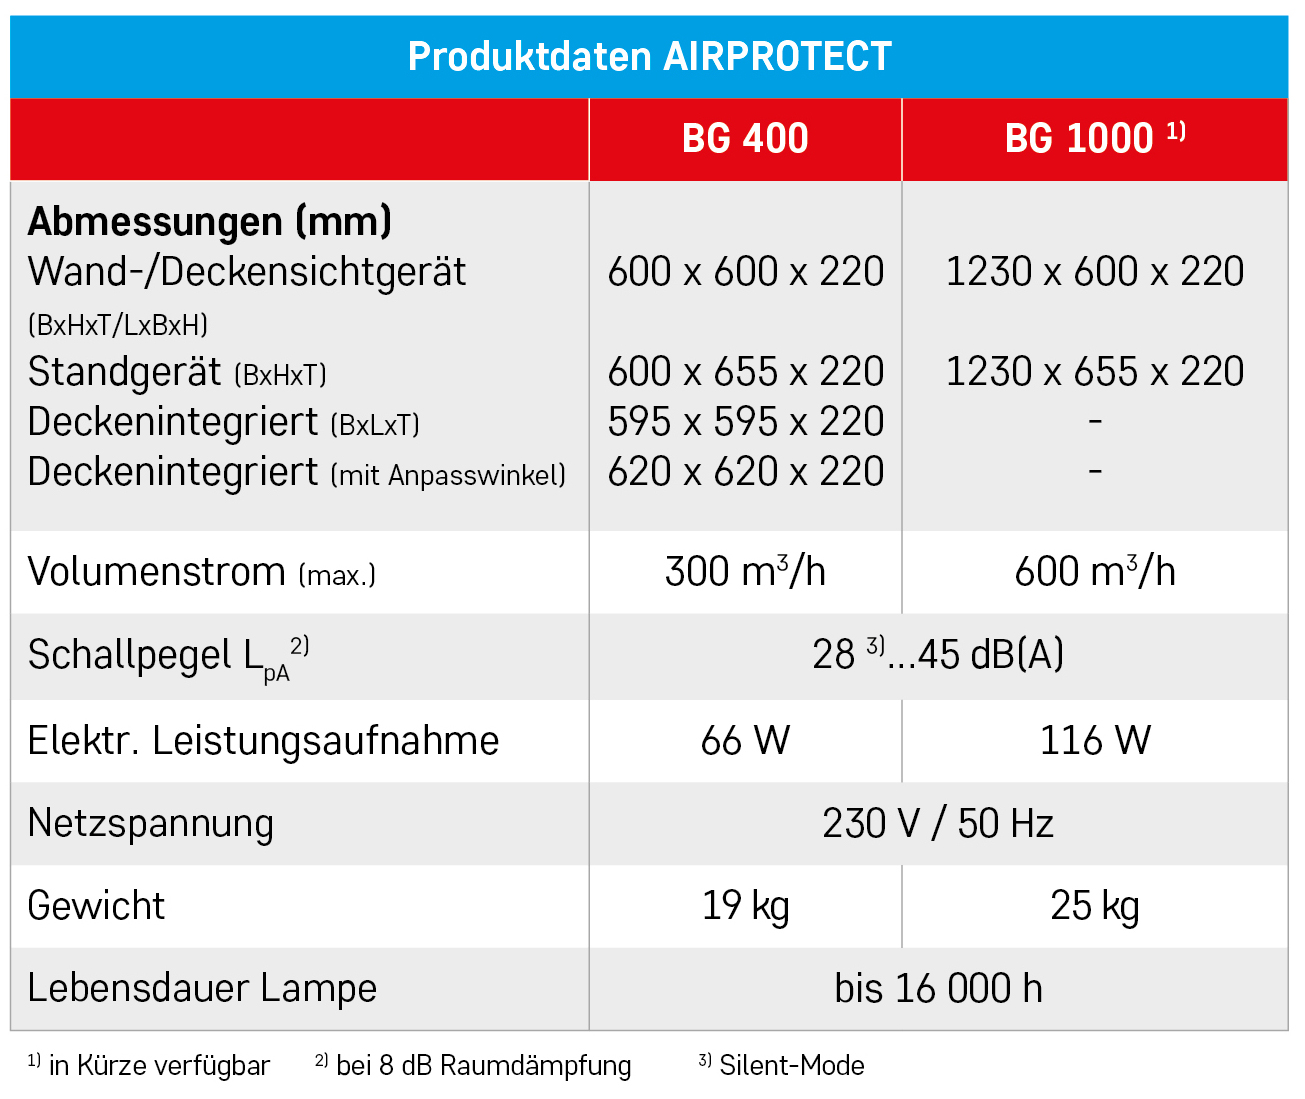 Tabelle_Produktdaten_Airprotect